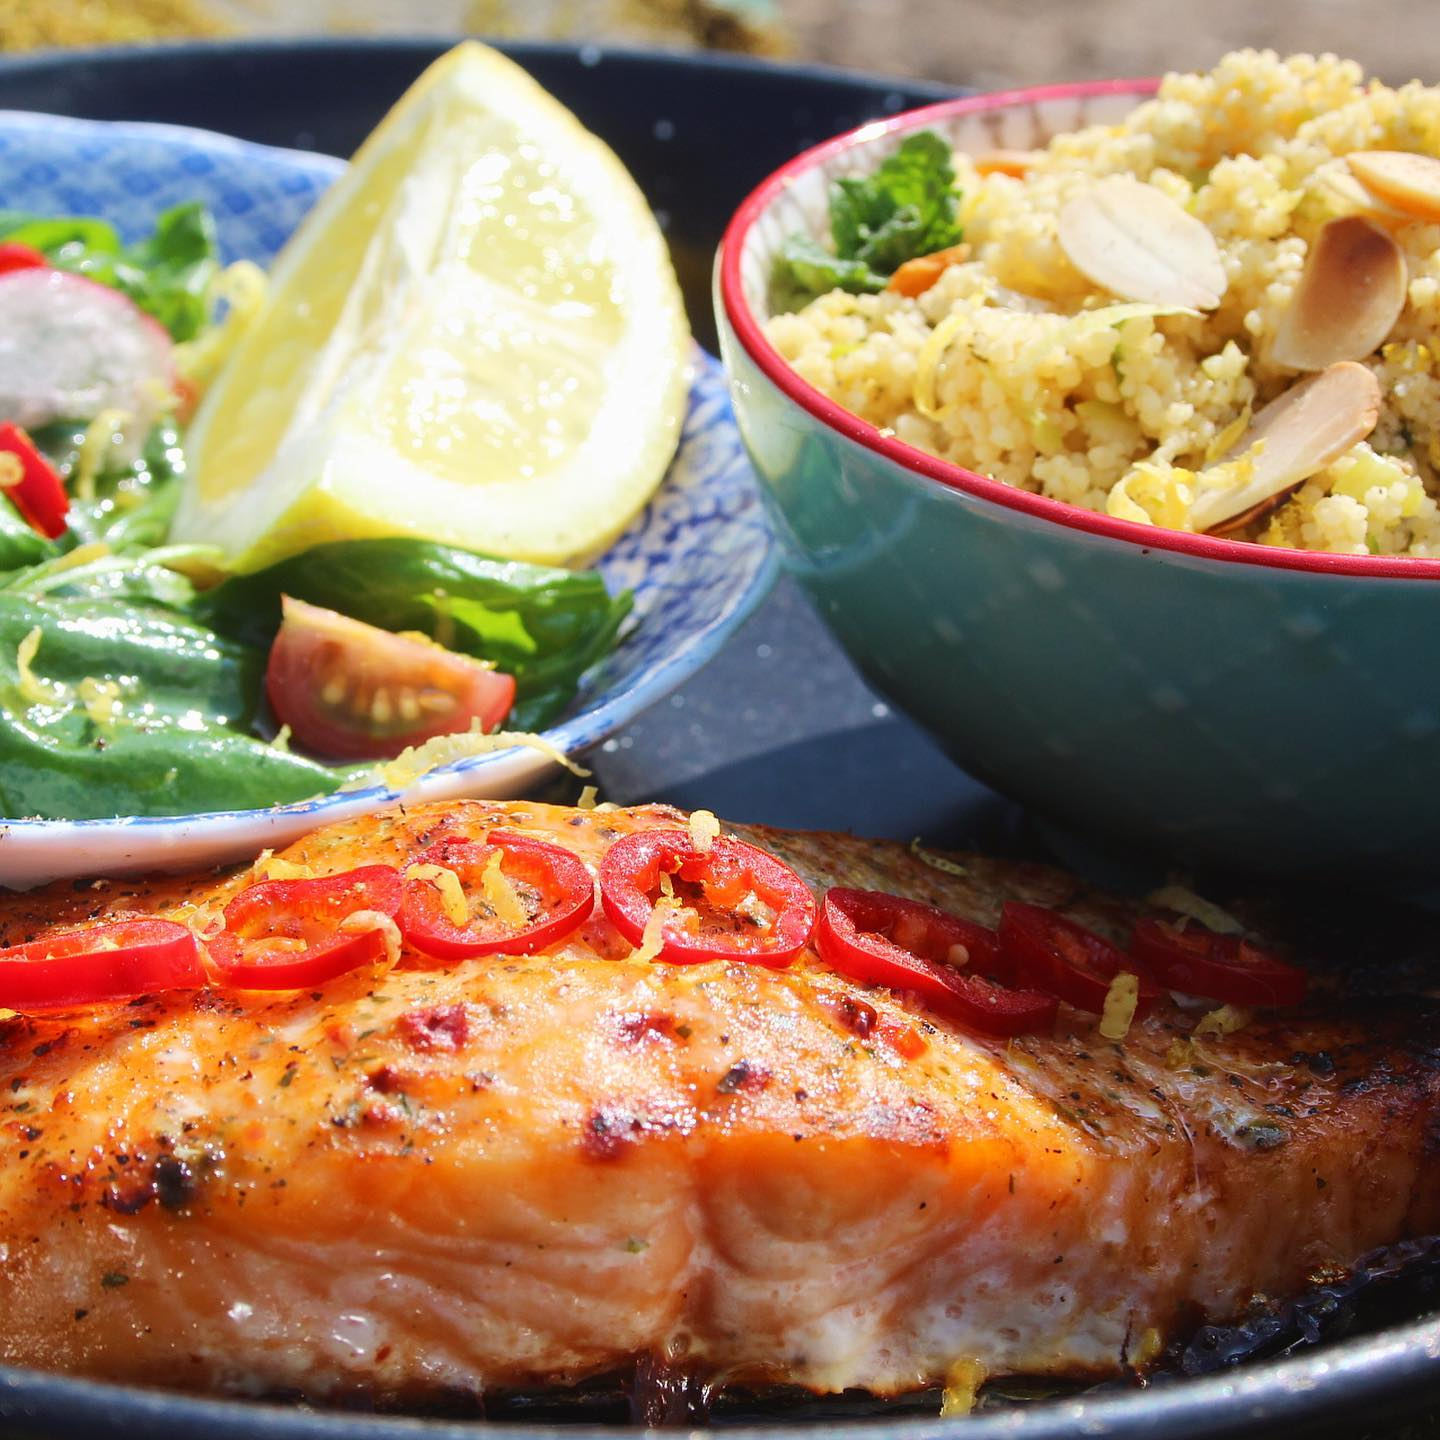 Chilli salmon and zesty couscous with green salad